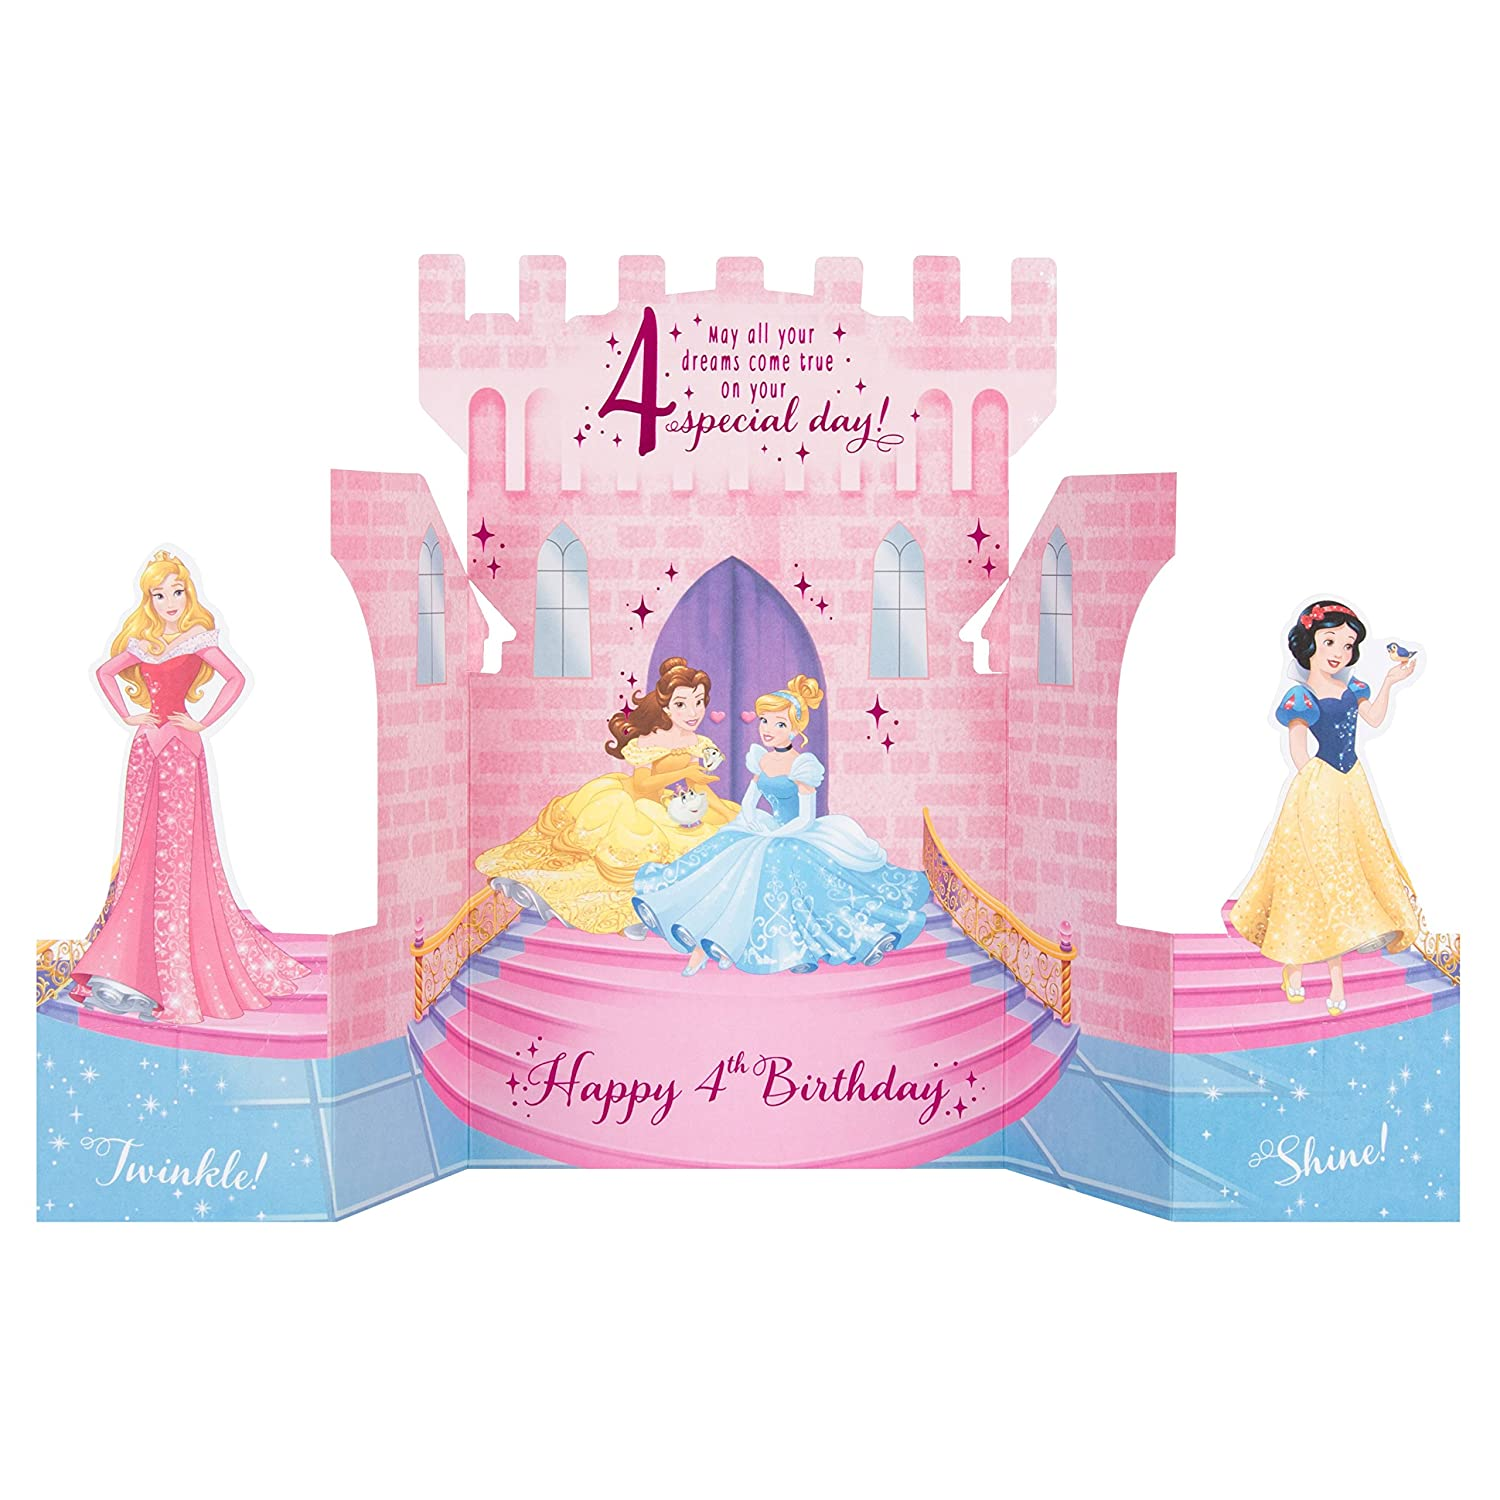 Hallmark Disney Princess 4th Birthday Card Pop Up Castle Medium